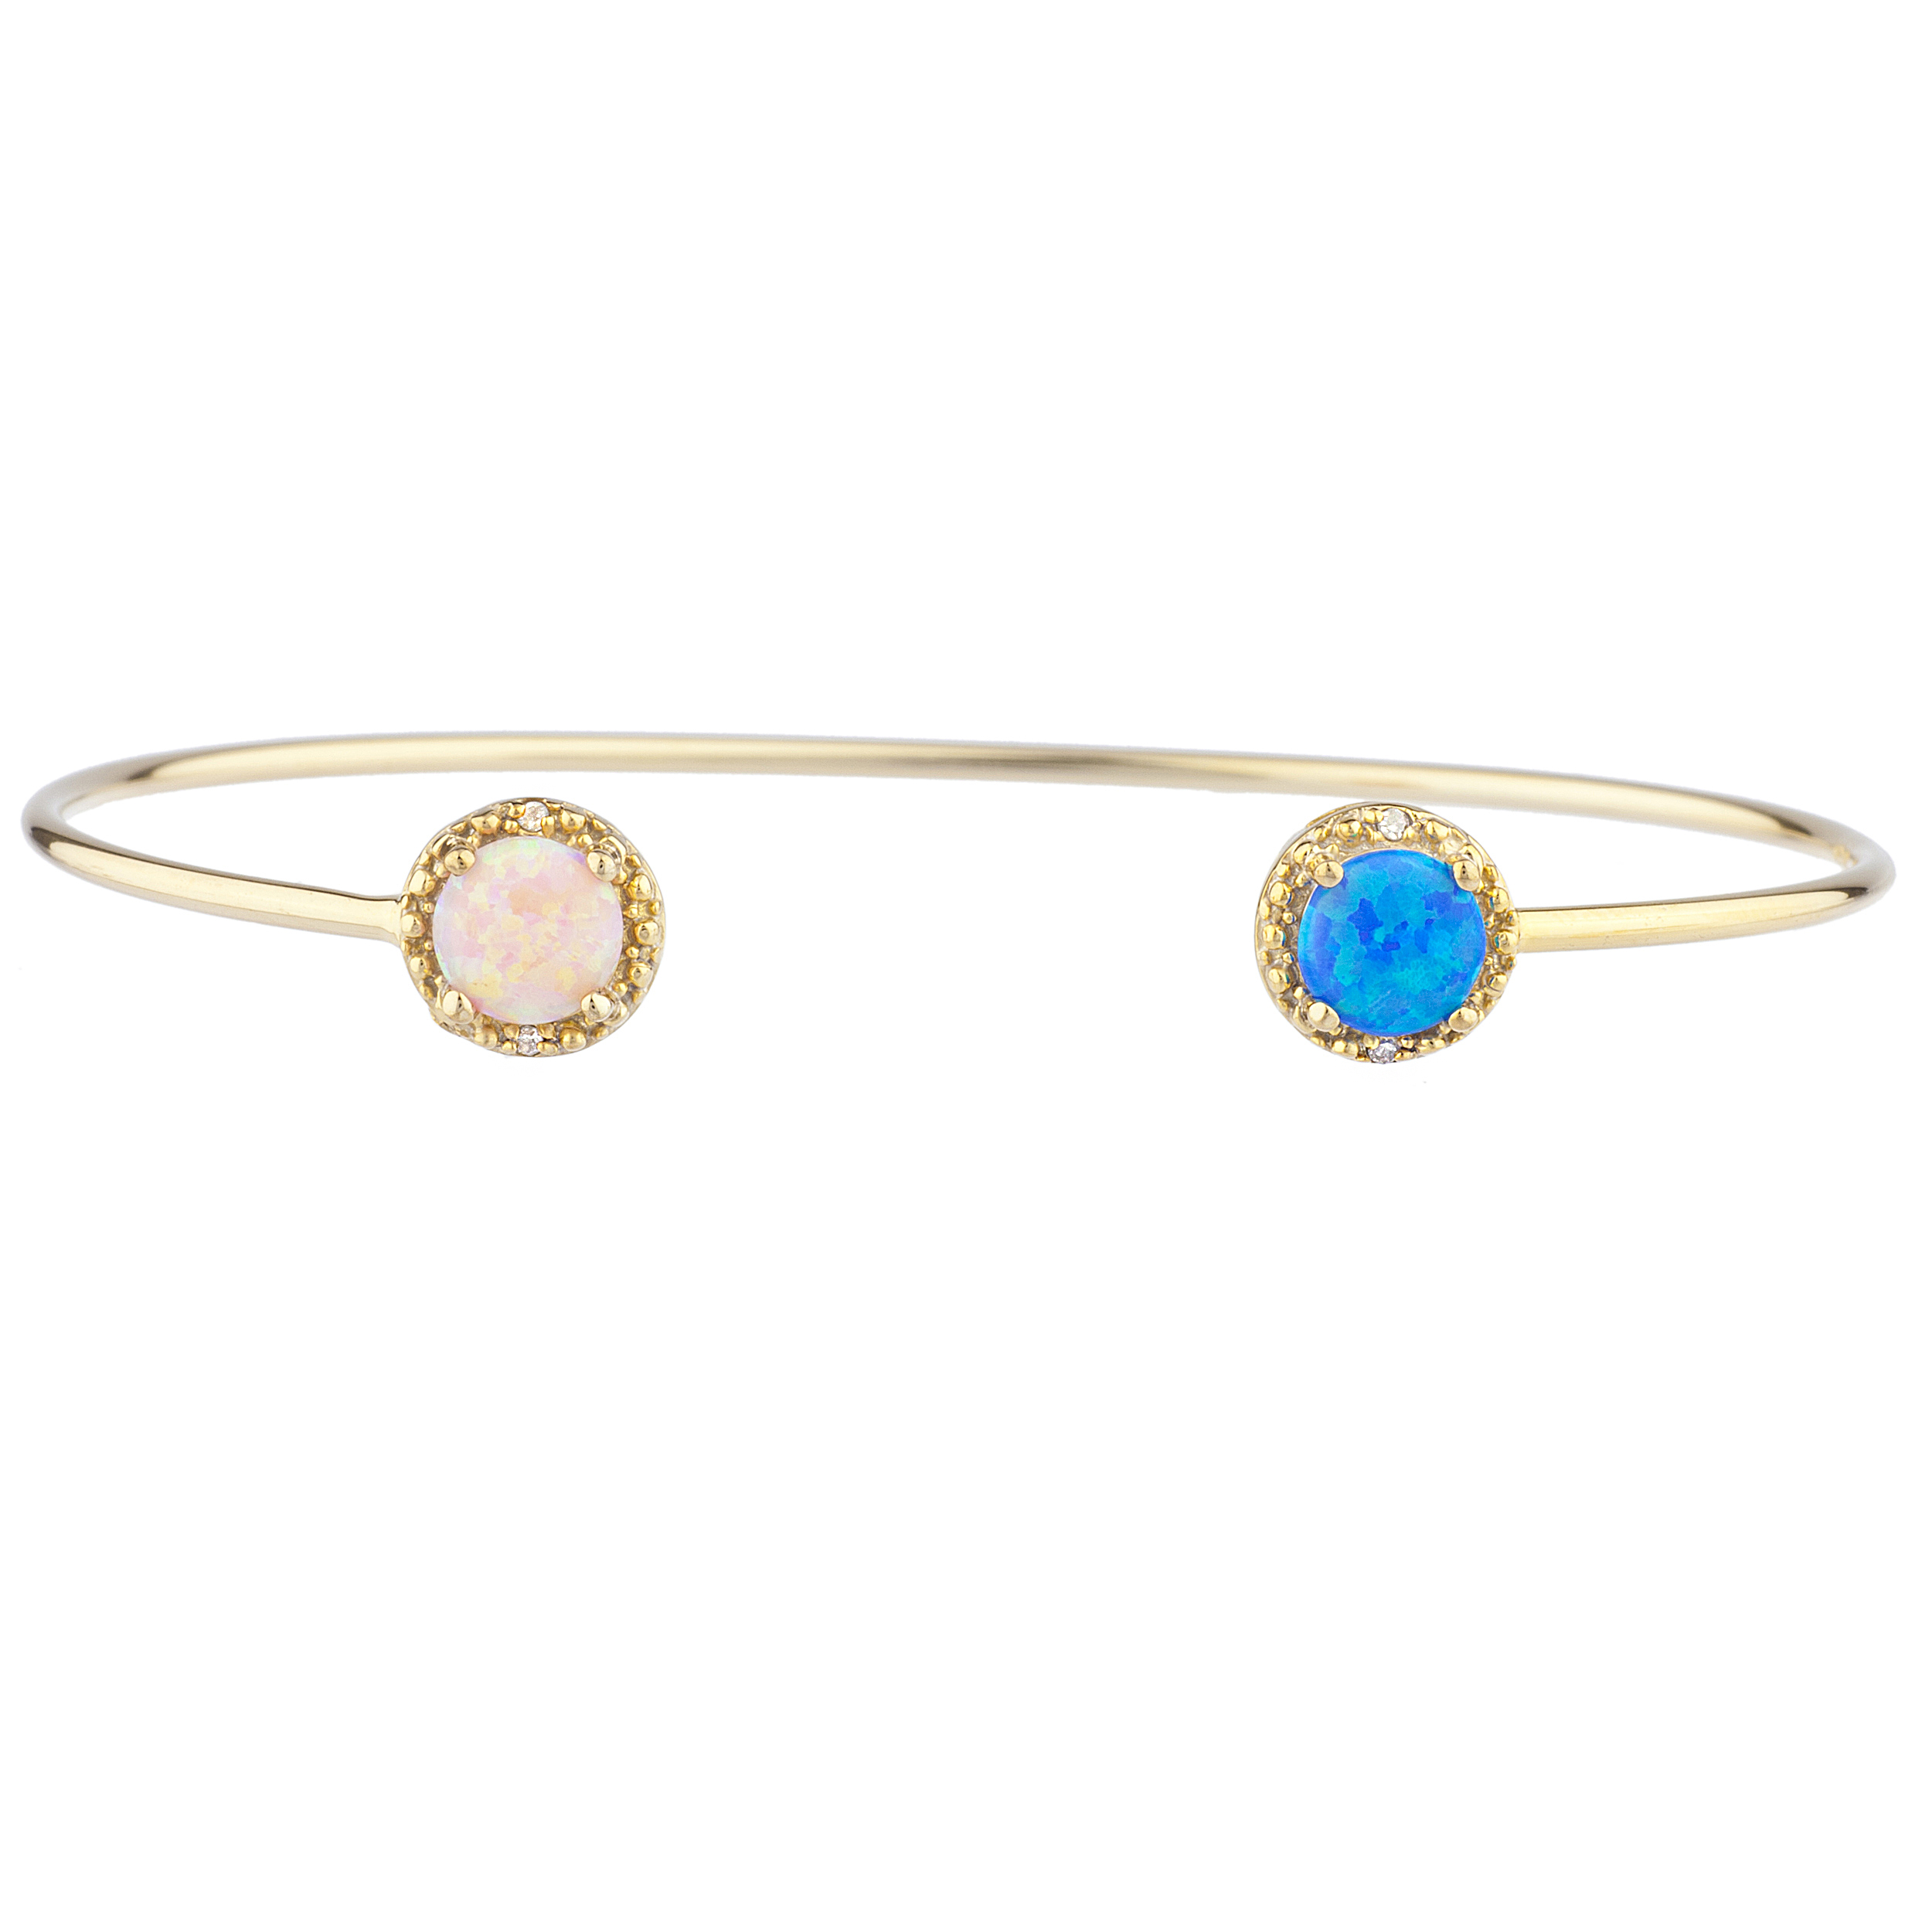 Blue Opal & Pink Opal Diamond Bangle Round Bracelet 14Kt Yellow Gold Plated Over .925 Sterling Silver by Elizabeth Jewelry Inc